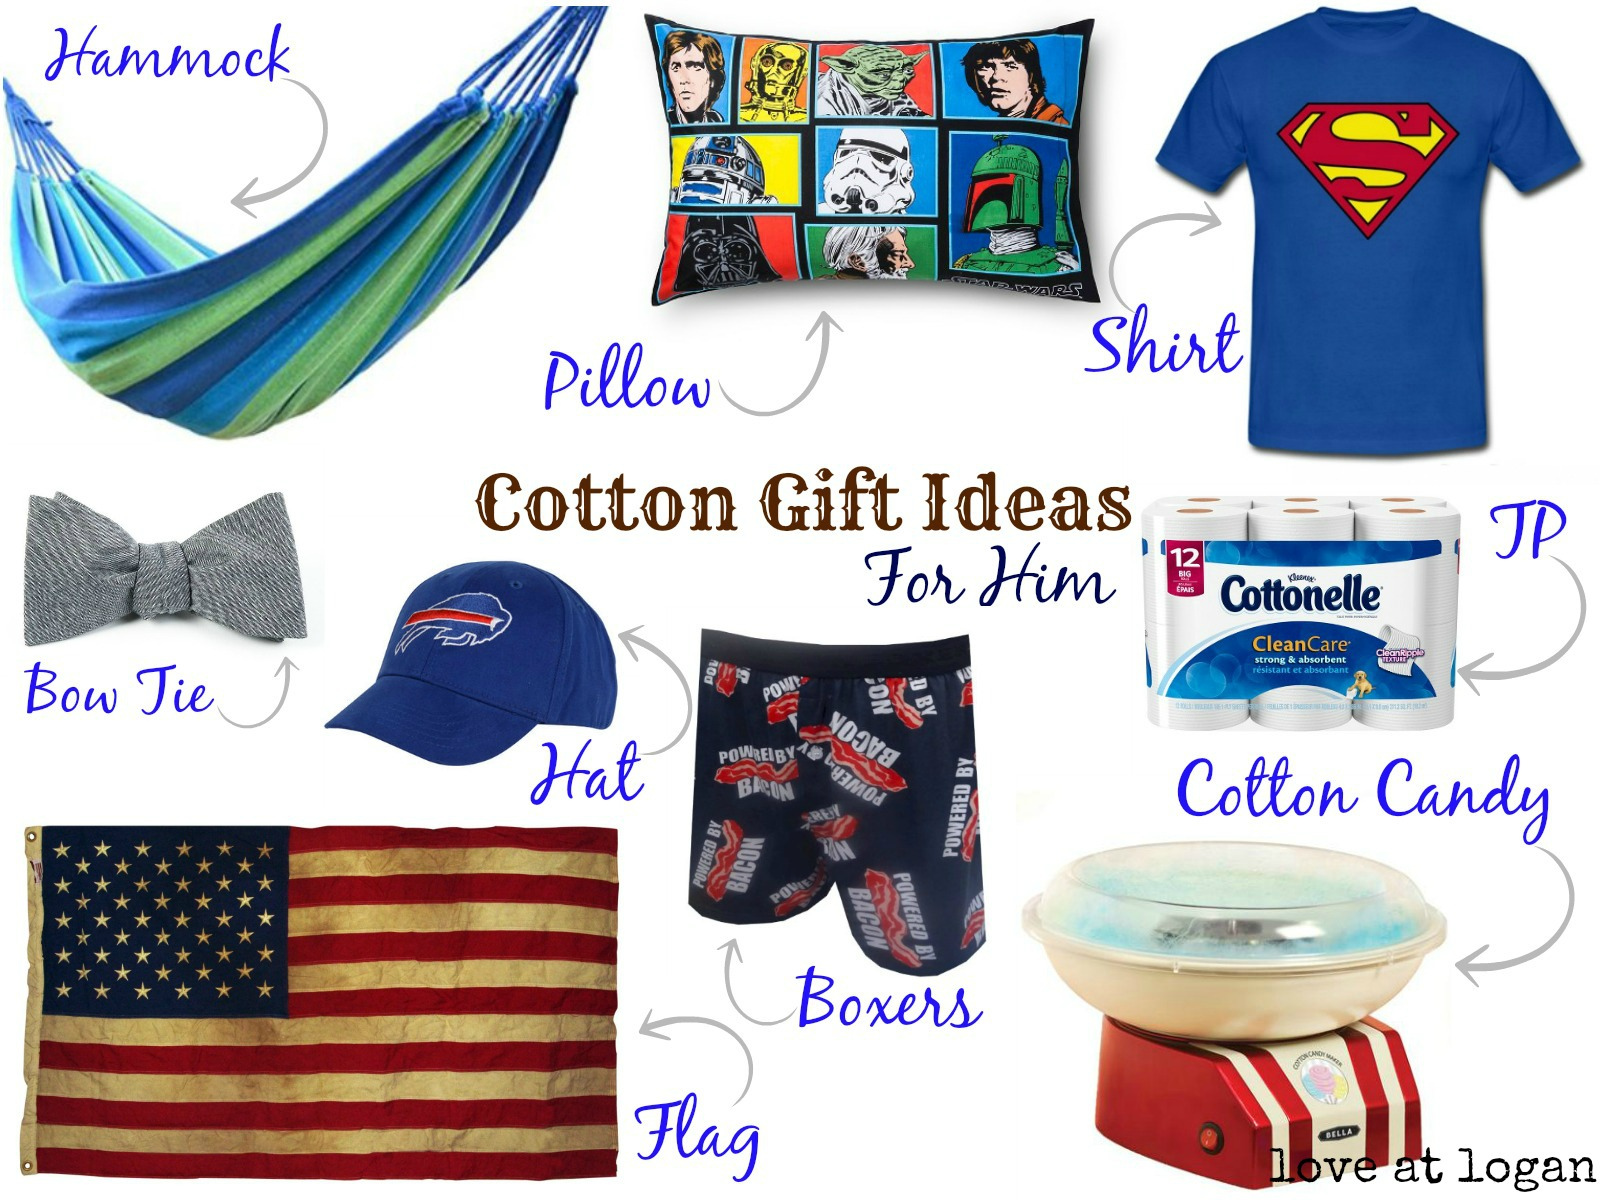 Love At Logan: Second Anniversary Cotton Gift Ideas